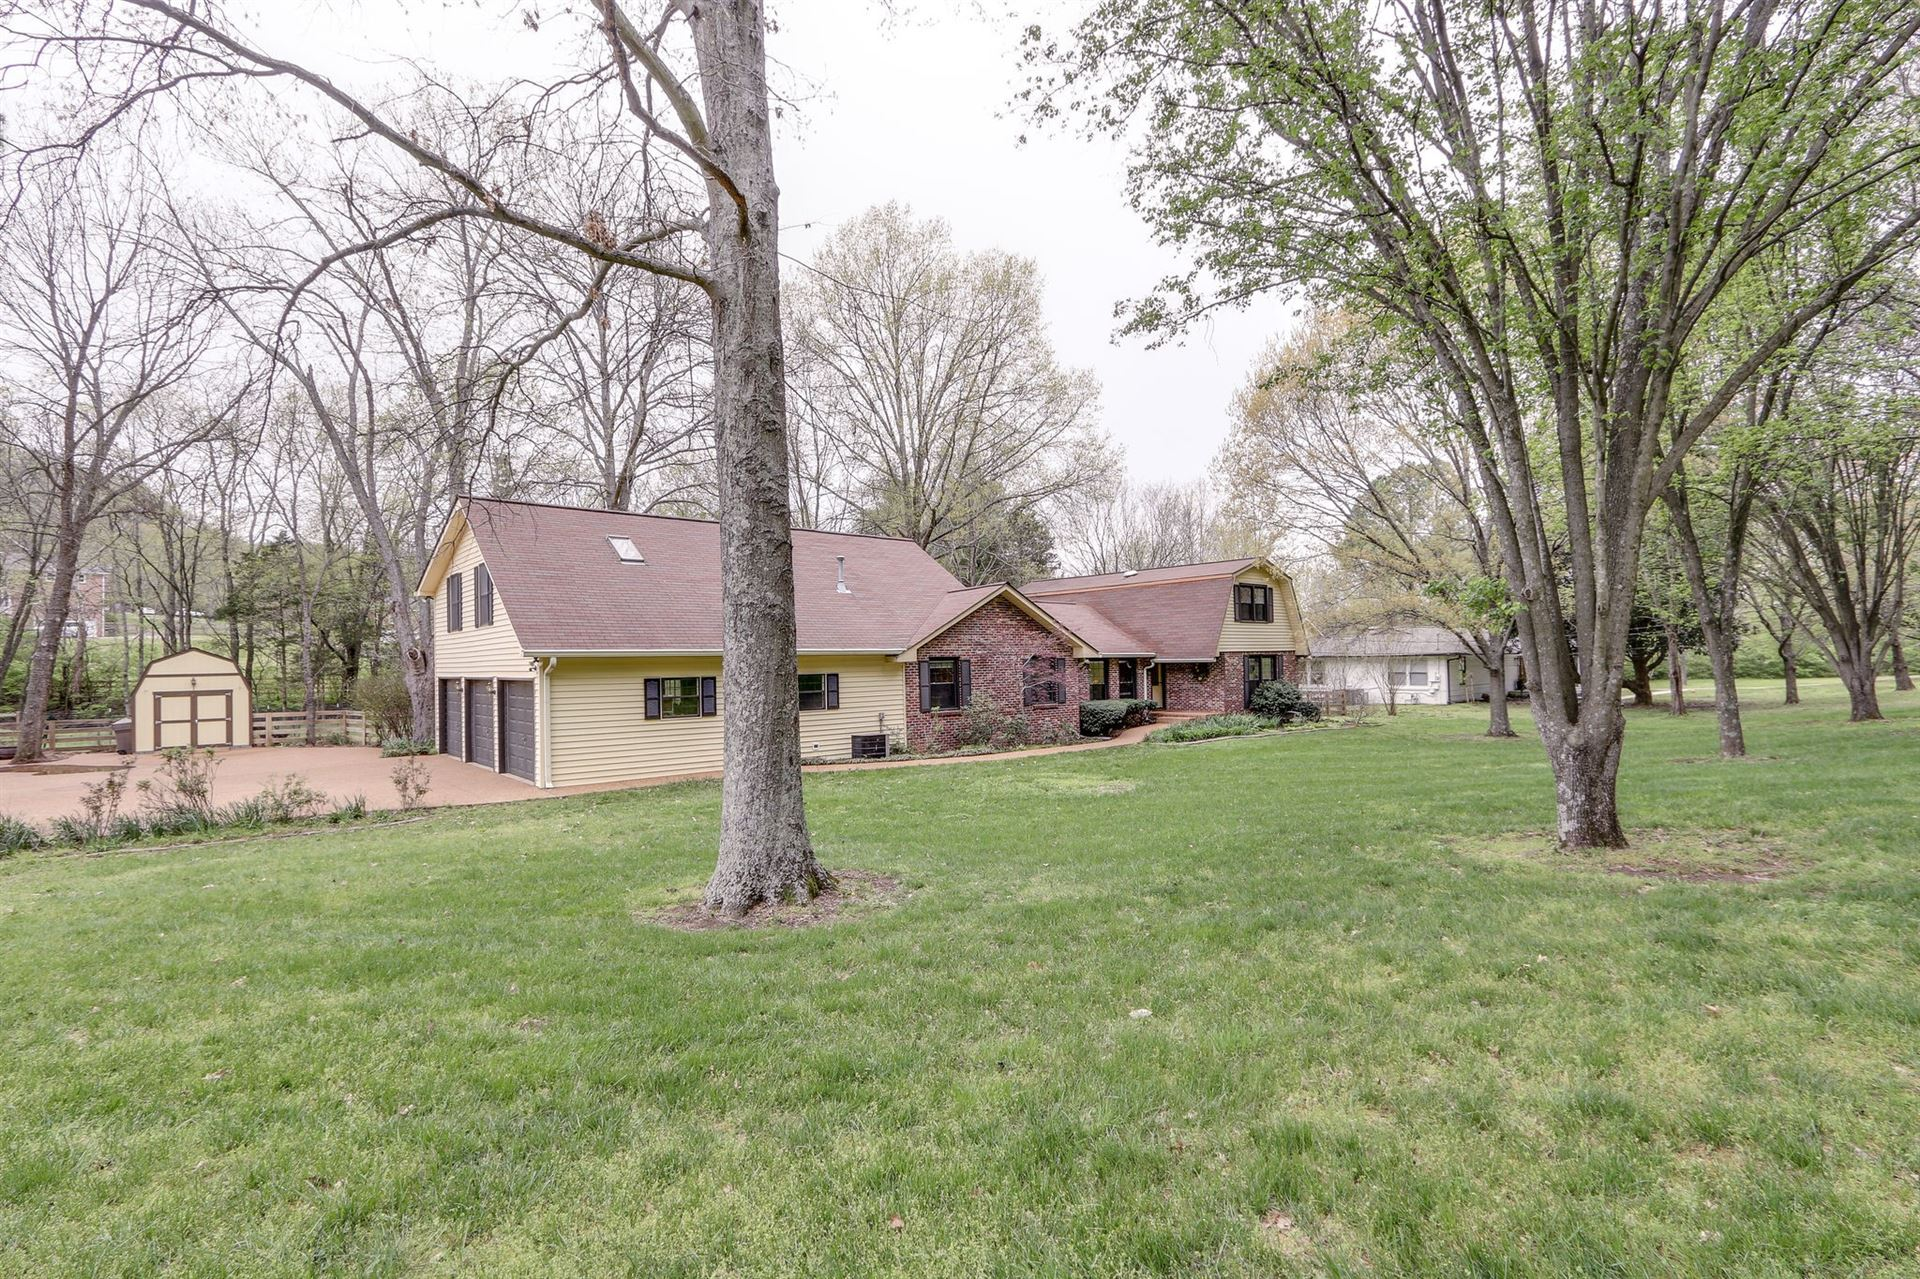 Photo of 881 Holly Tree Gap Rd, Brentwood, TN 37027 (MLS # 2136748)